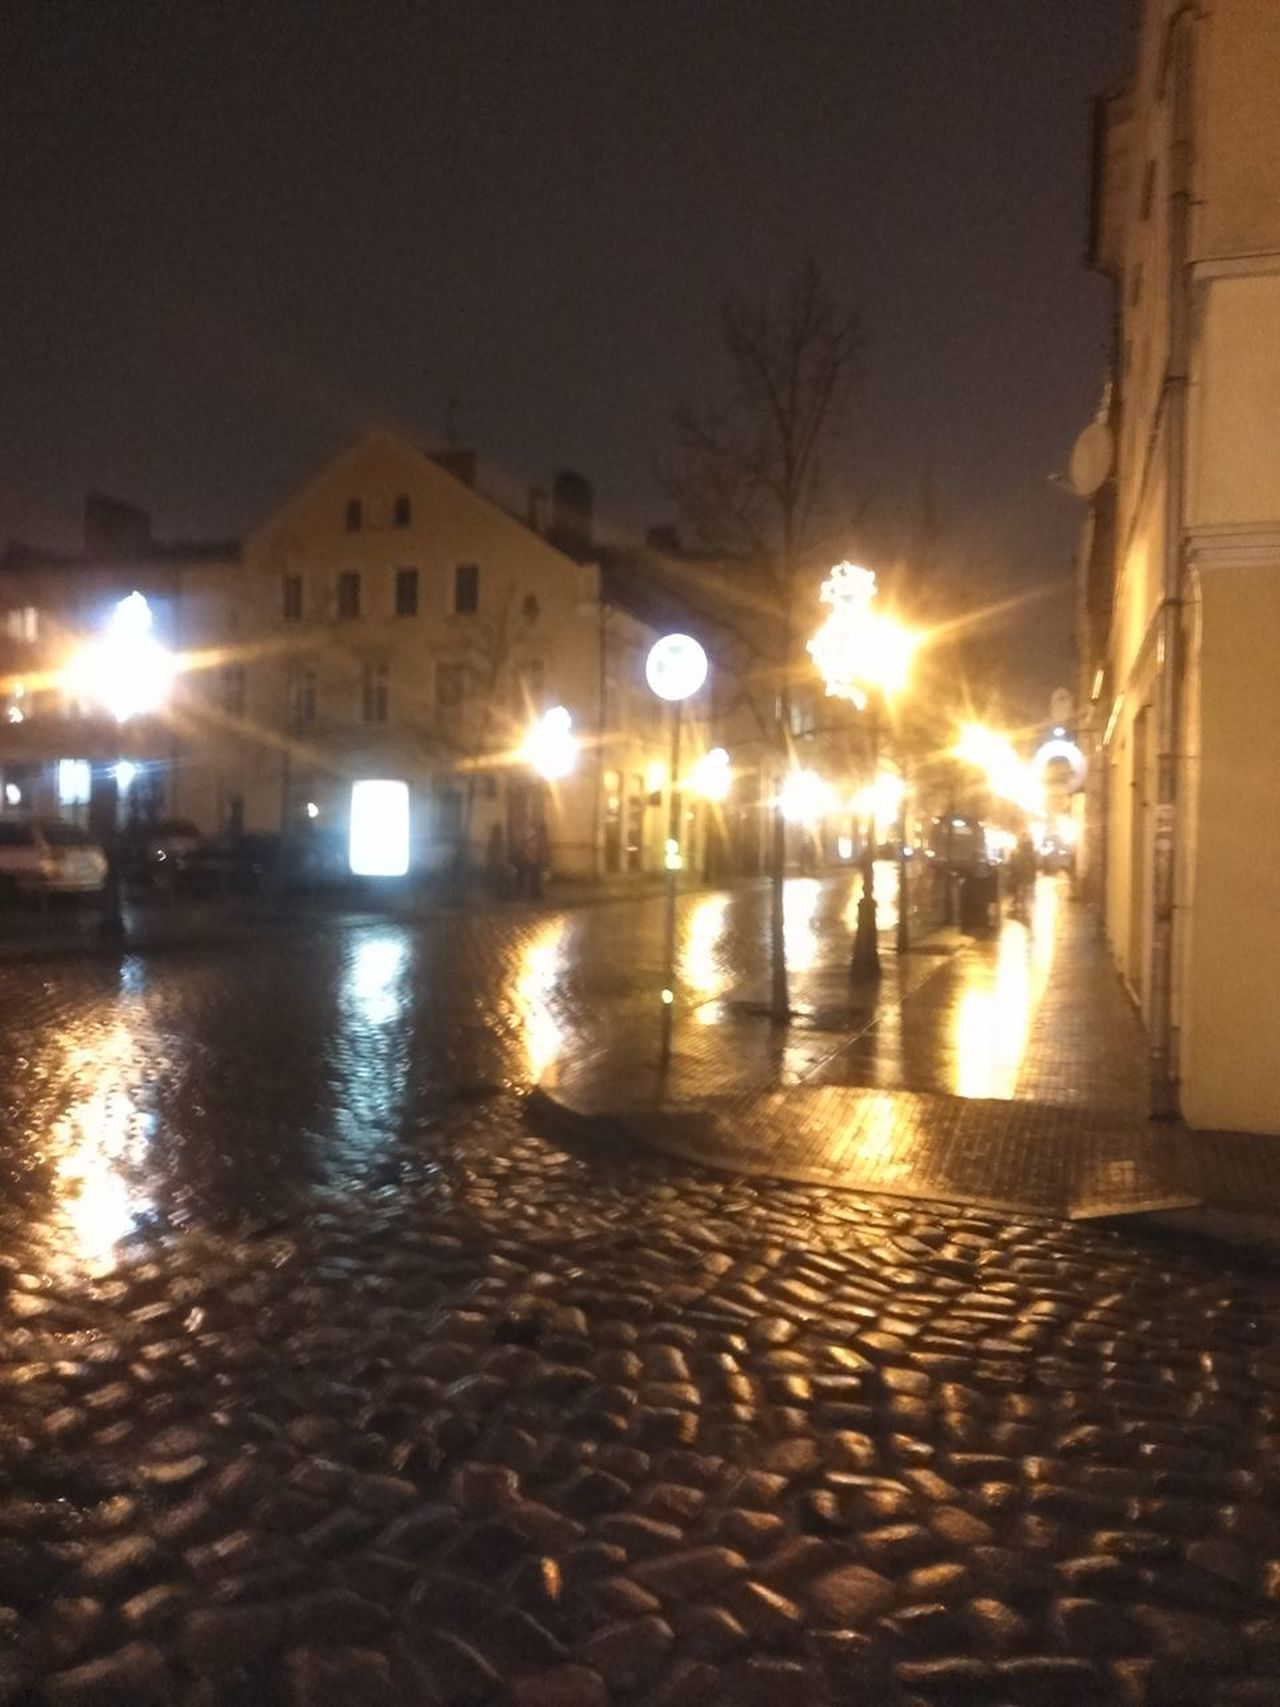 Rainy night in Klaipėda. Architecture Building Exterior Built Structure City Illuminated Klaipeda Old Town Lithuania Night No People Outdoors Reflection Sky Water